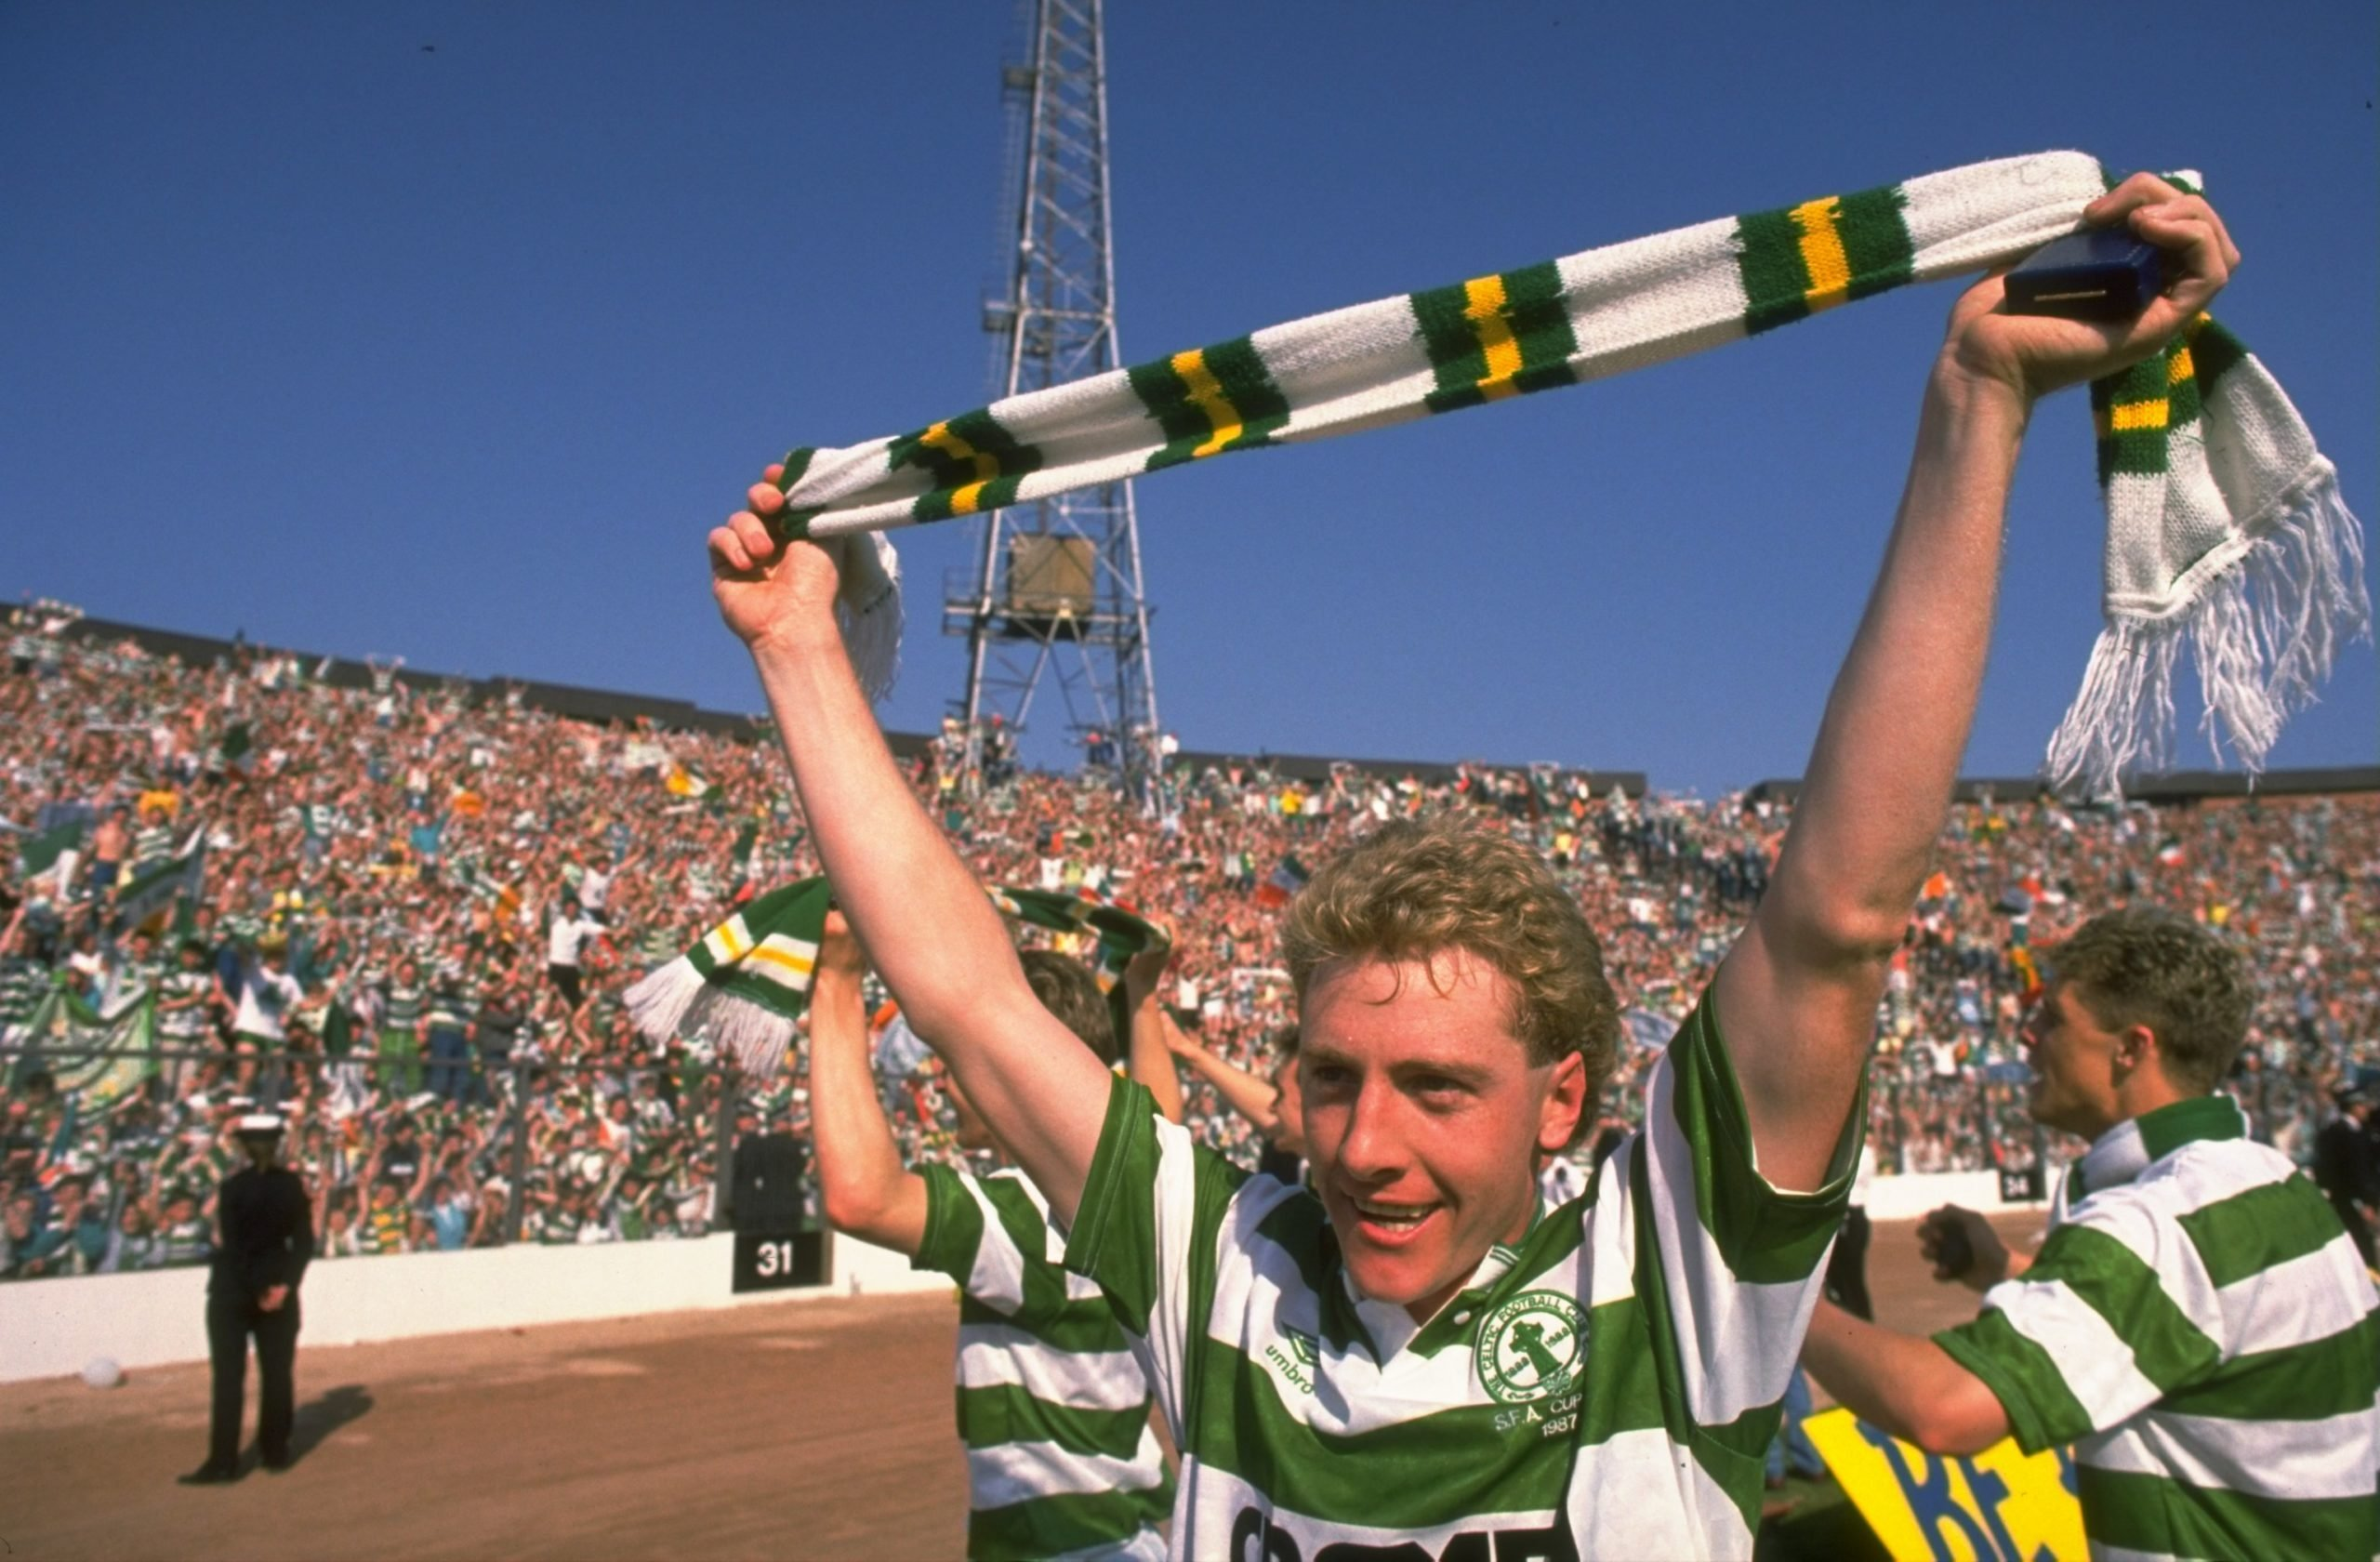 Frank McAvennie, a key member of Celtic's centenary side